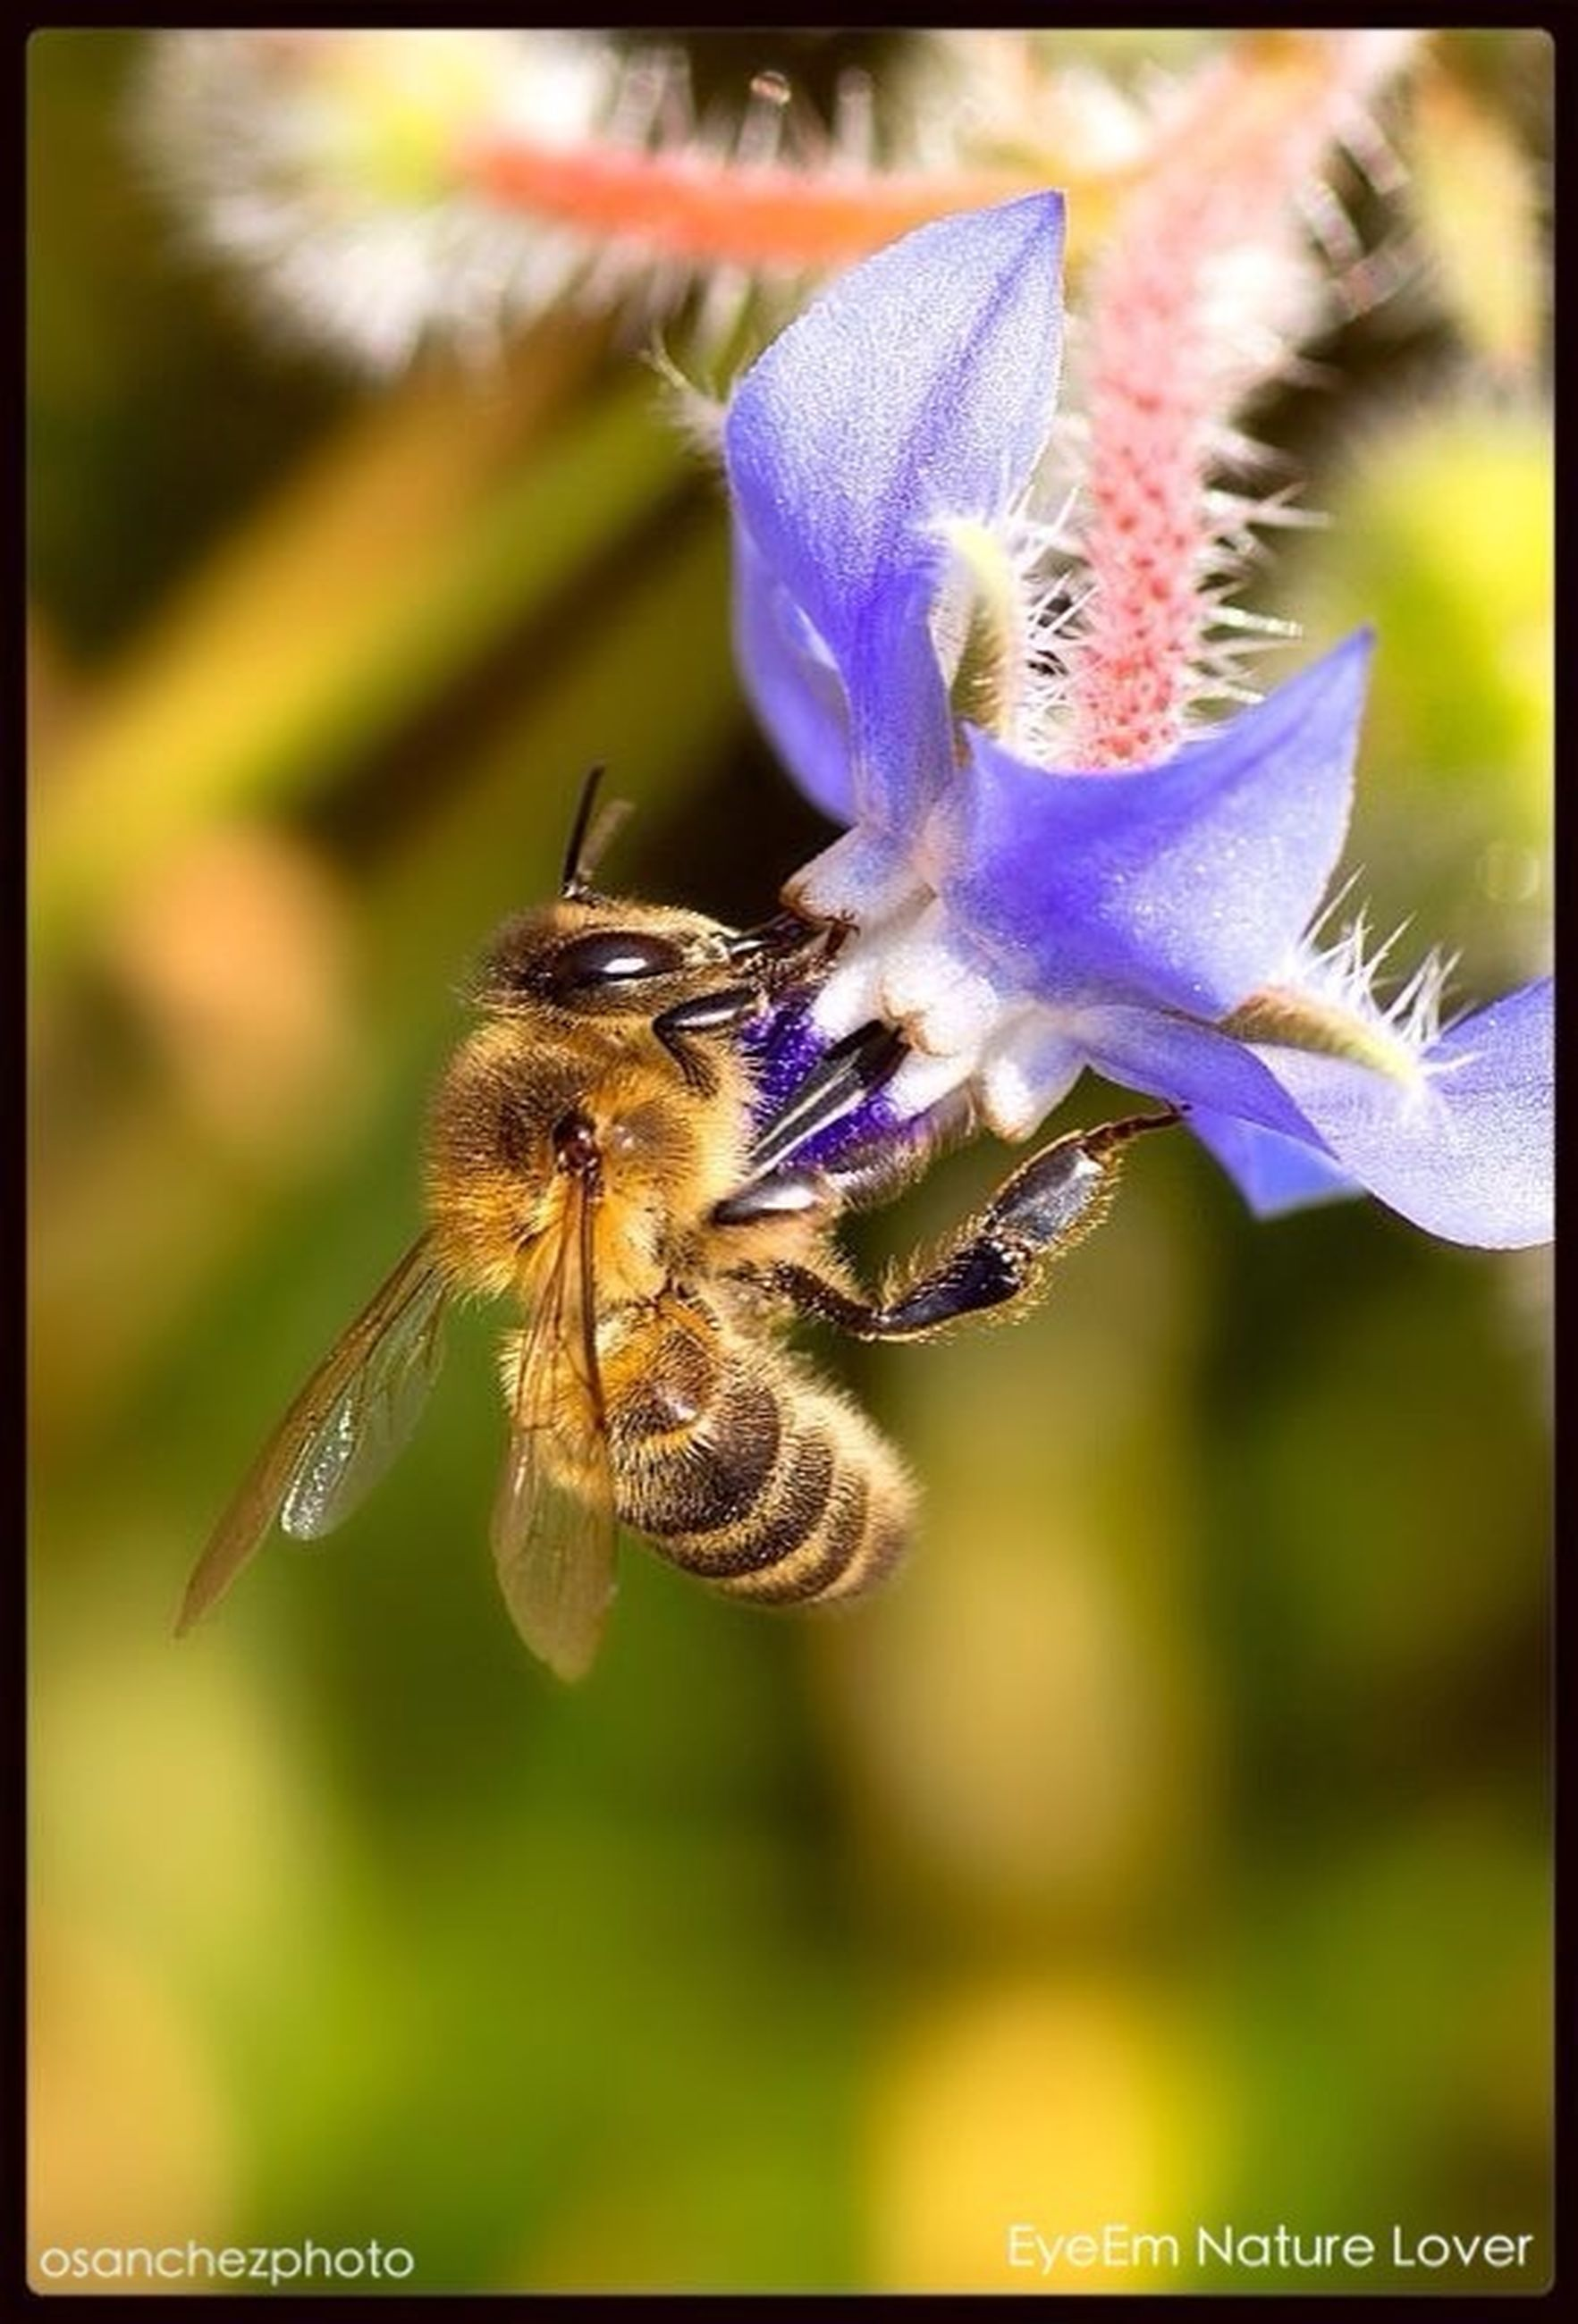 insect, animal themes, animals in the wild, one animal, wildlife, flower, pollination, bee, fragility, focus on foreground, close-up, transfer print, purple, freshness, beauty in nature, nature, symbiotic relationship, petal, growth, honey bee